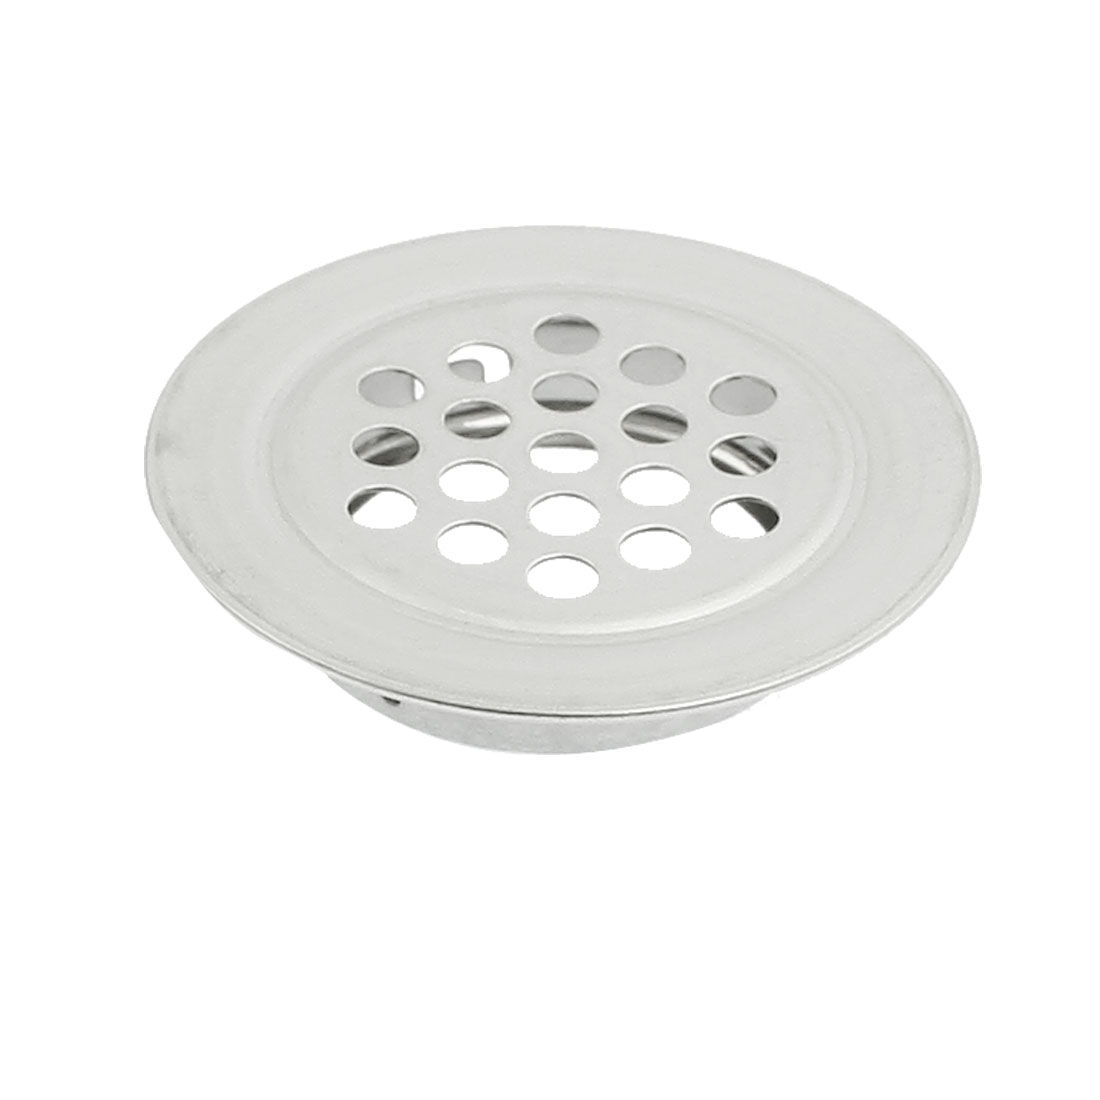 29mm x 8mm Stainless Steel Round Mesh Hole Air Vent Louver